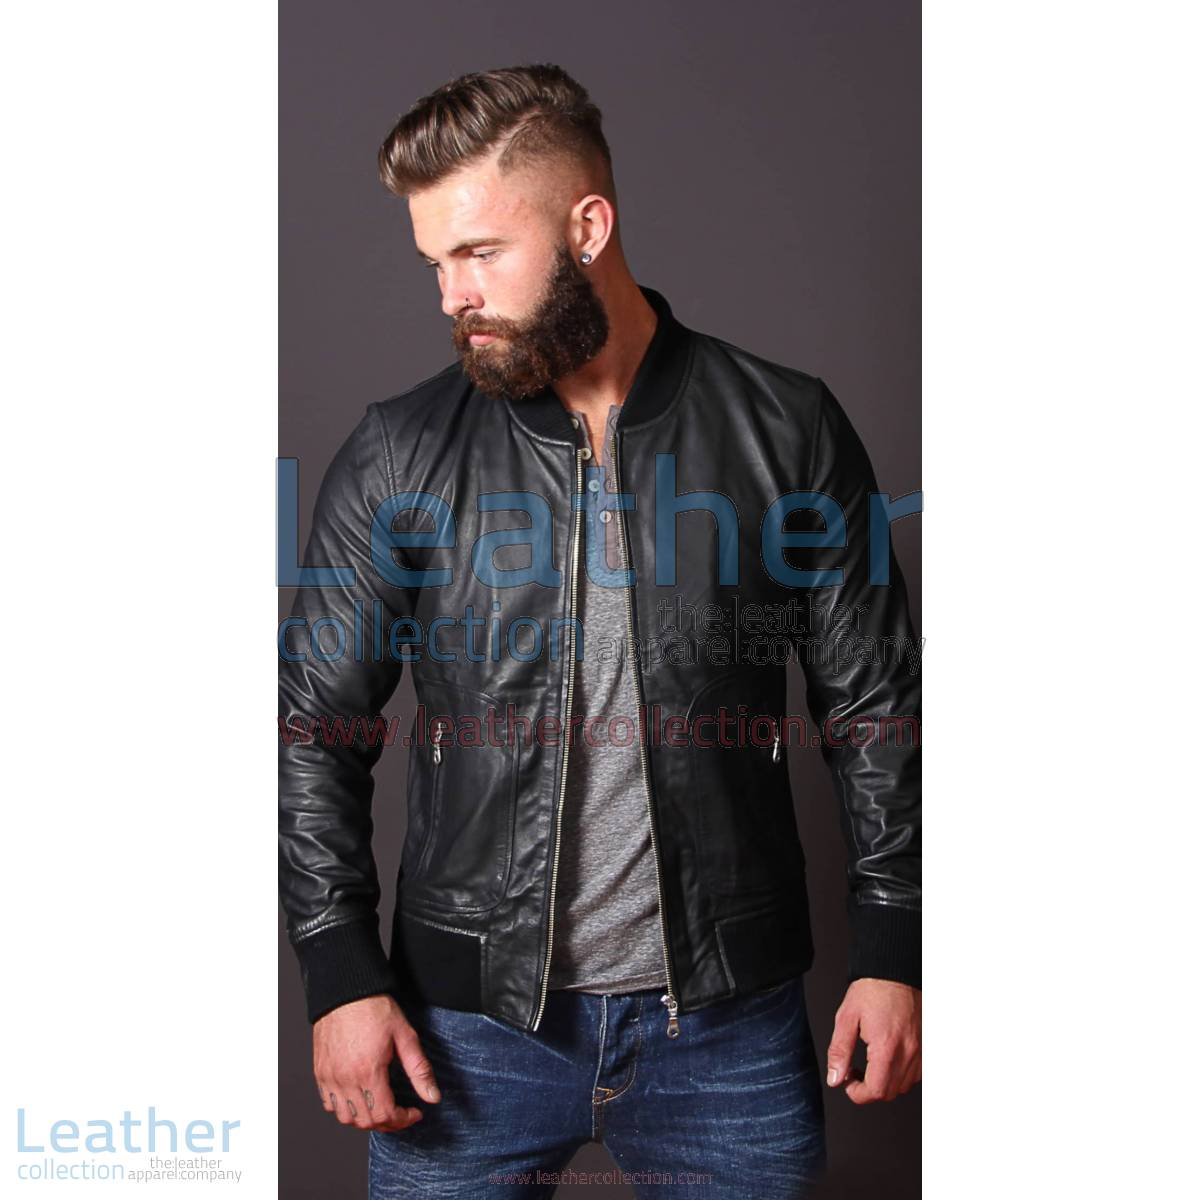 Heritage Leather Jacket For Men | heritage leather jacket